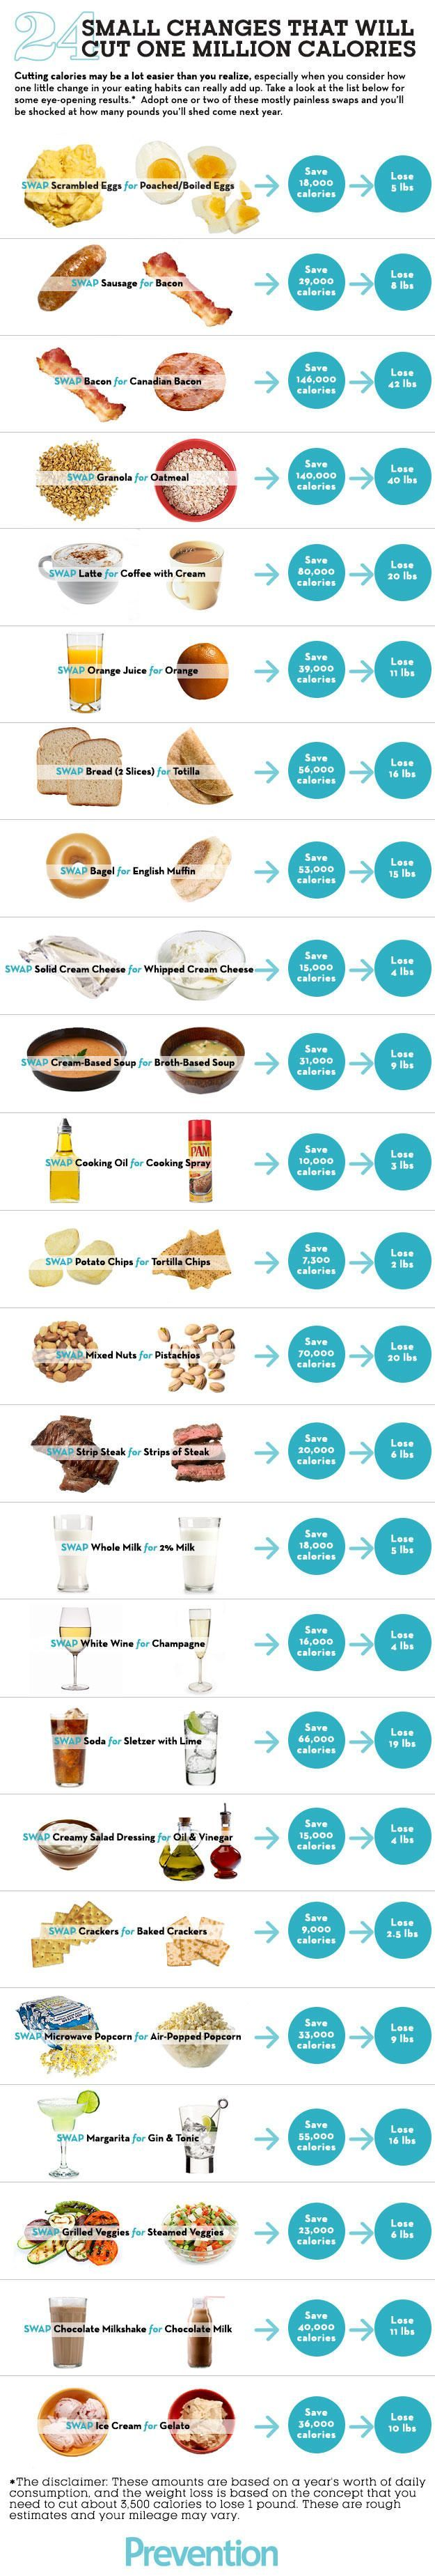 How To Cut One Million Calories  http://www.prevention.com/weight-loss/food-swaps-cut-calories?utm_source=facebook.com